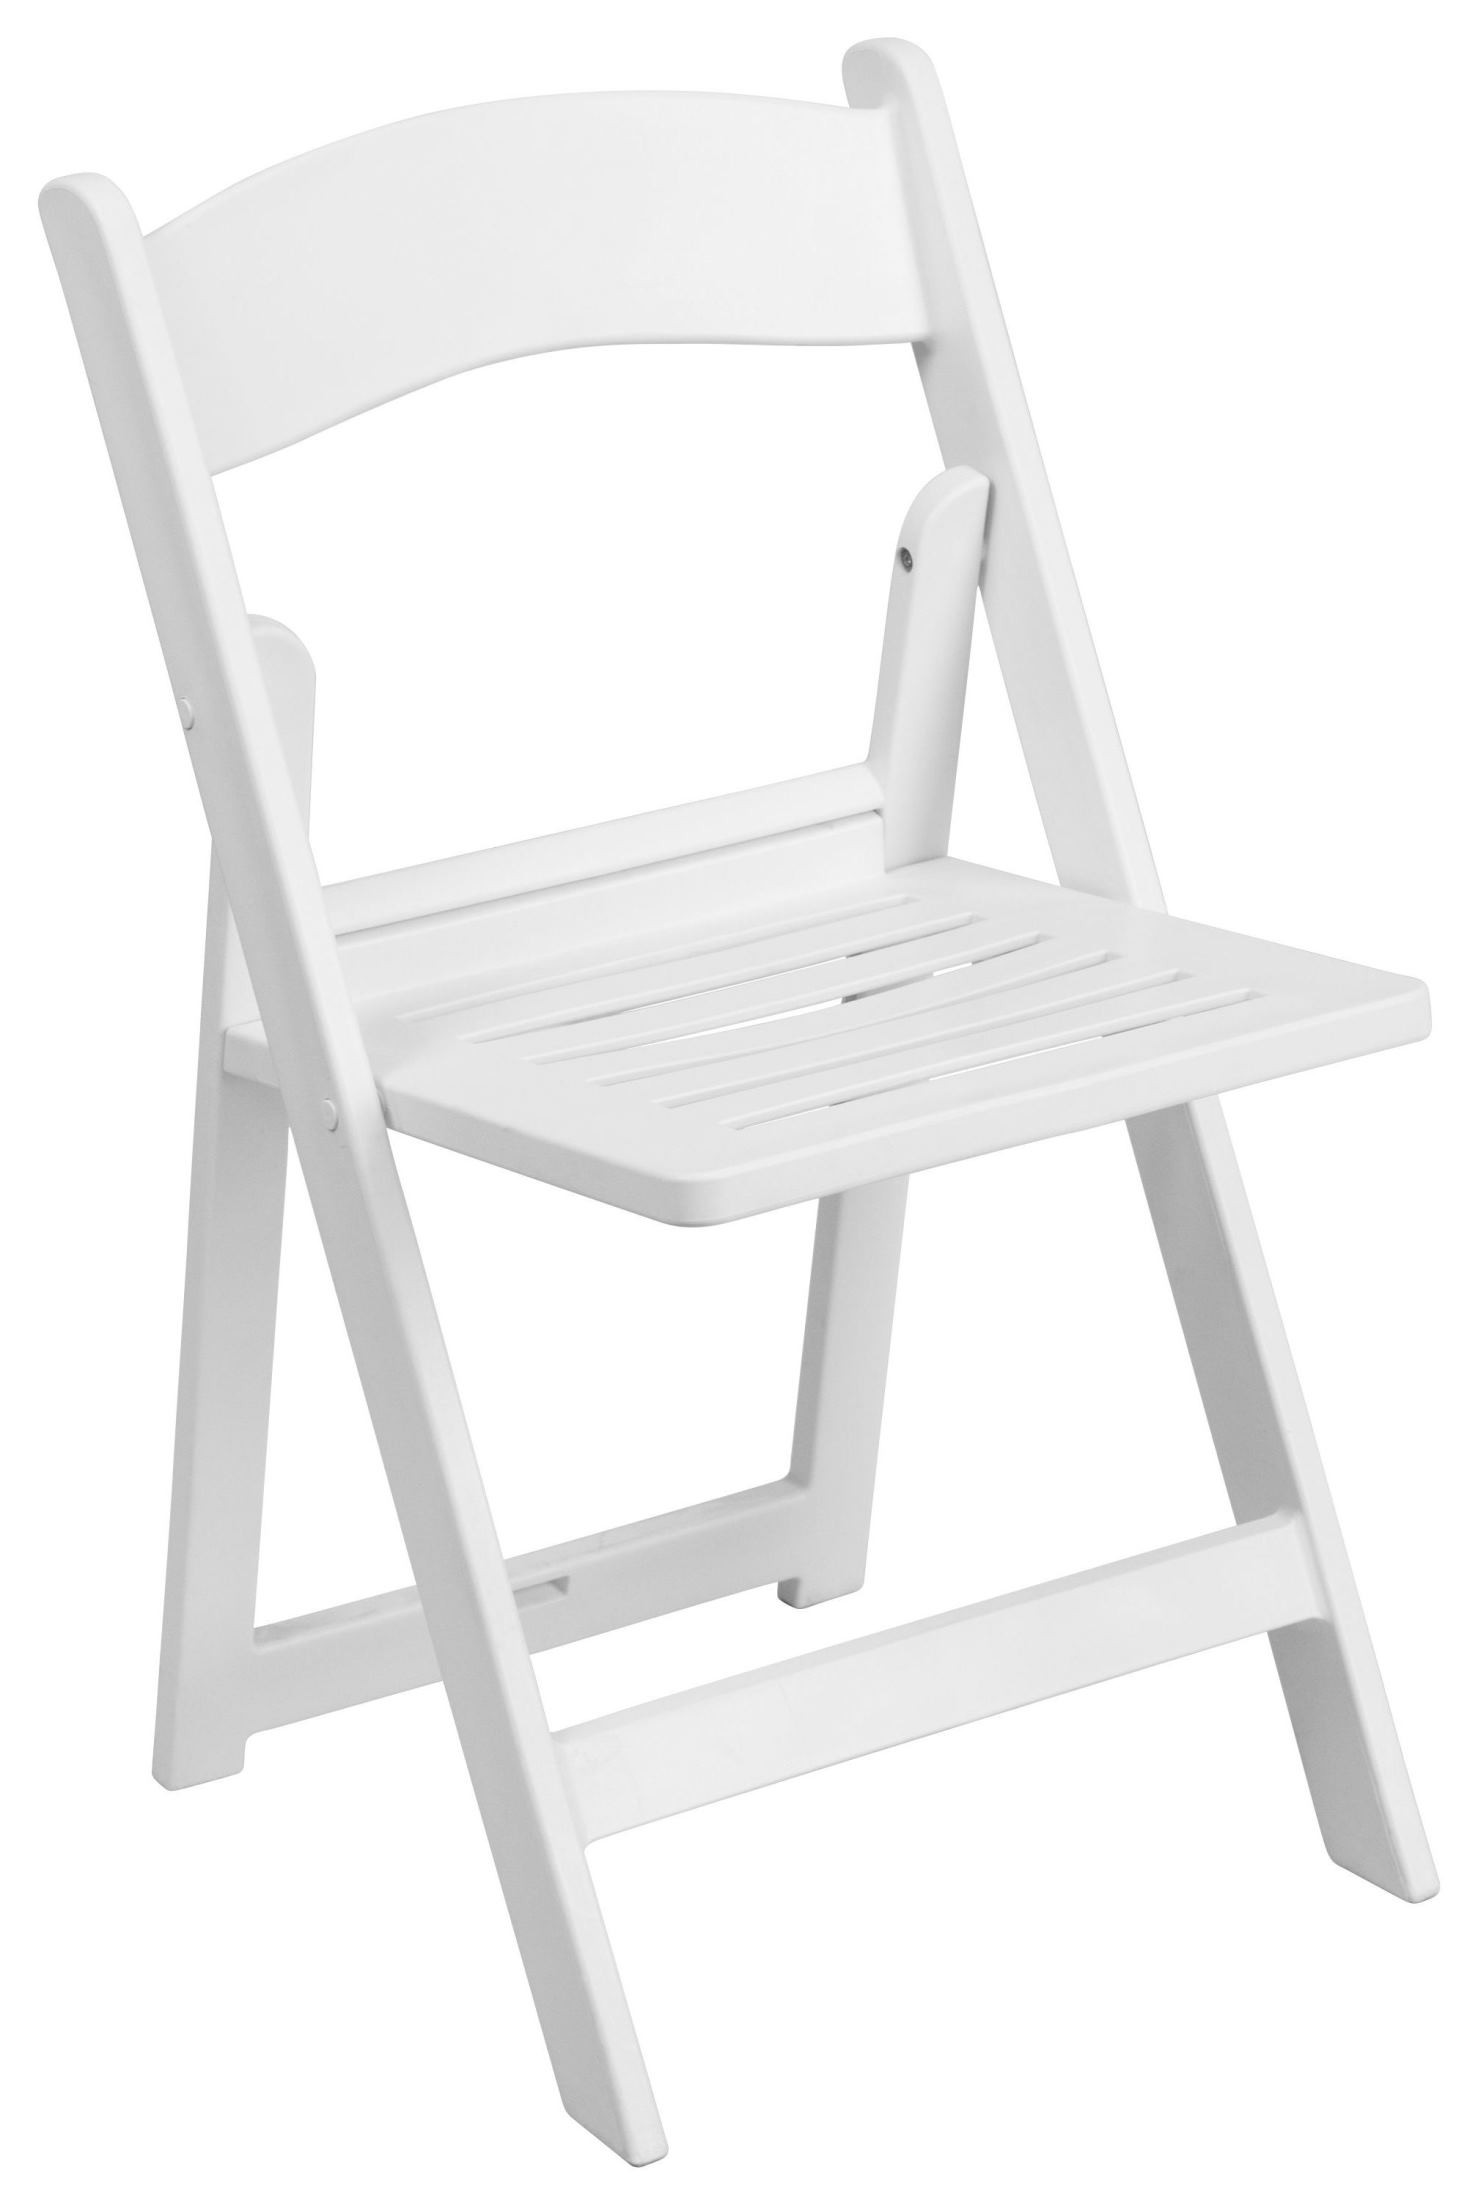 hercules folding chair round wicker chairs series white resin slatted from